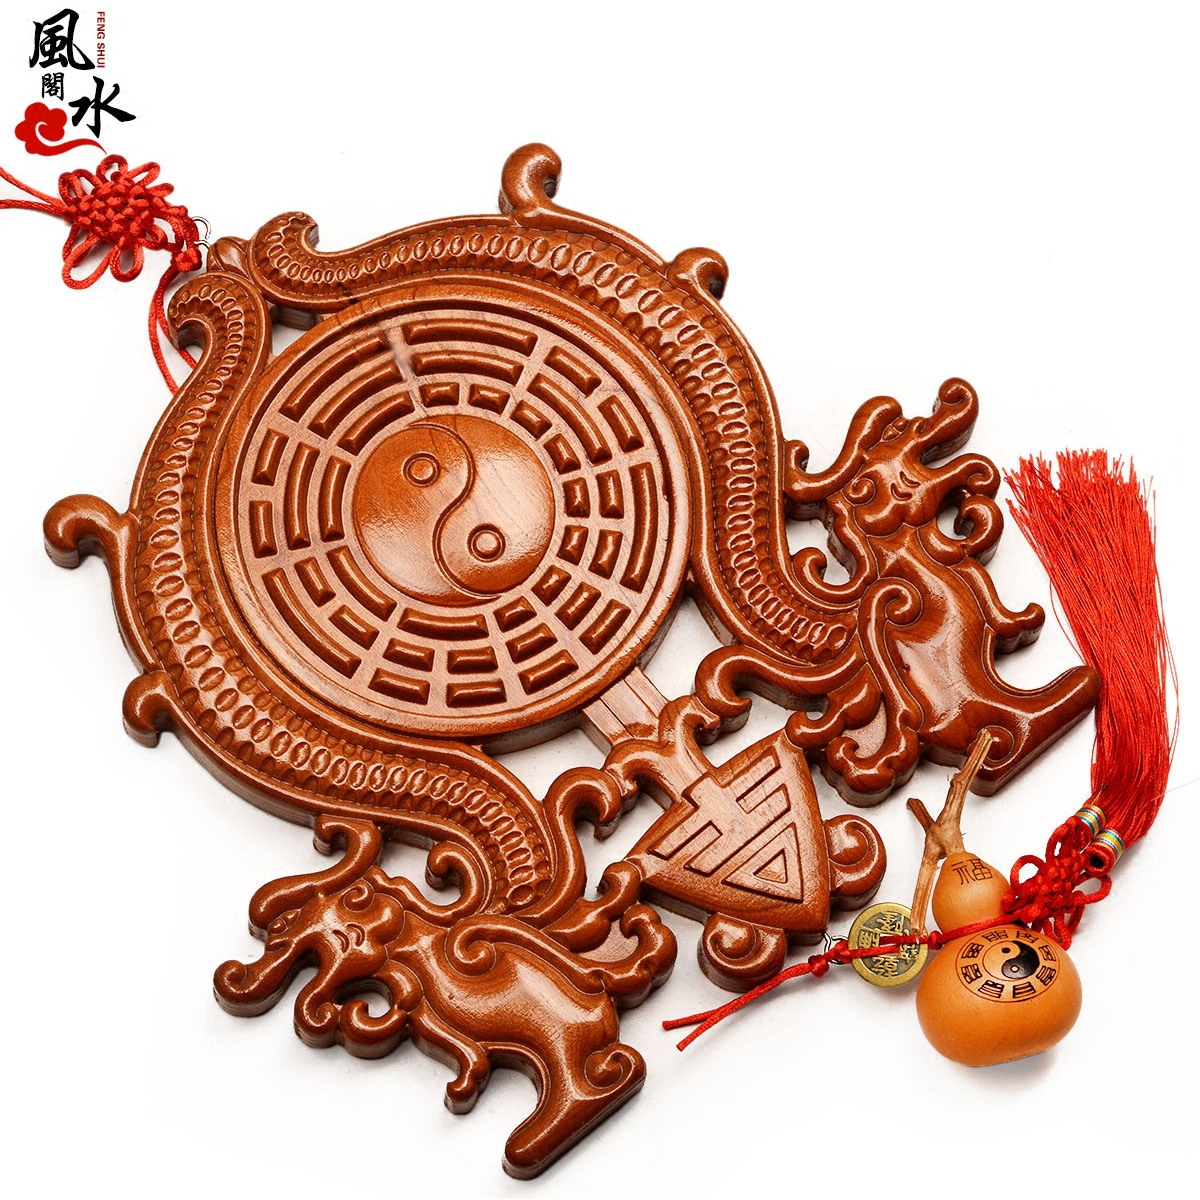 Feng Shui House Mahogany Wood Carving Ssangyong Gossip Mirror Pendant Ornaments Resolve Day Cut Corners Evil Five Emperors Money Copper Bells